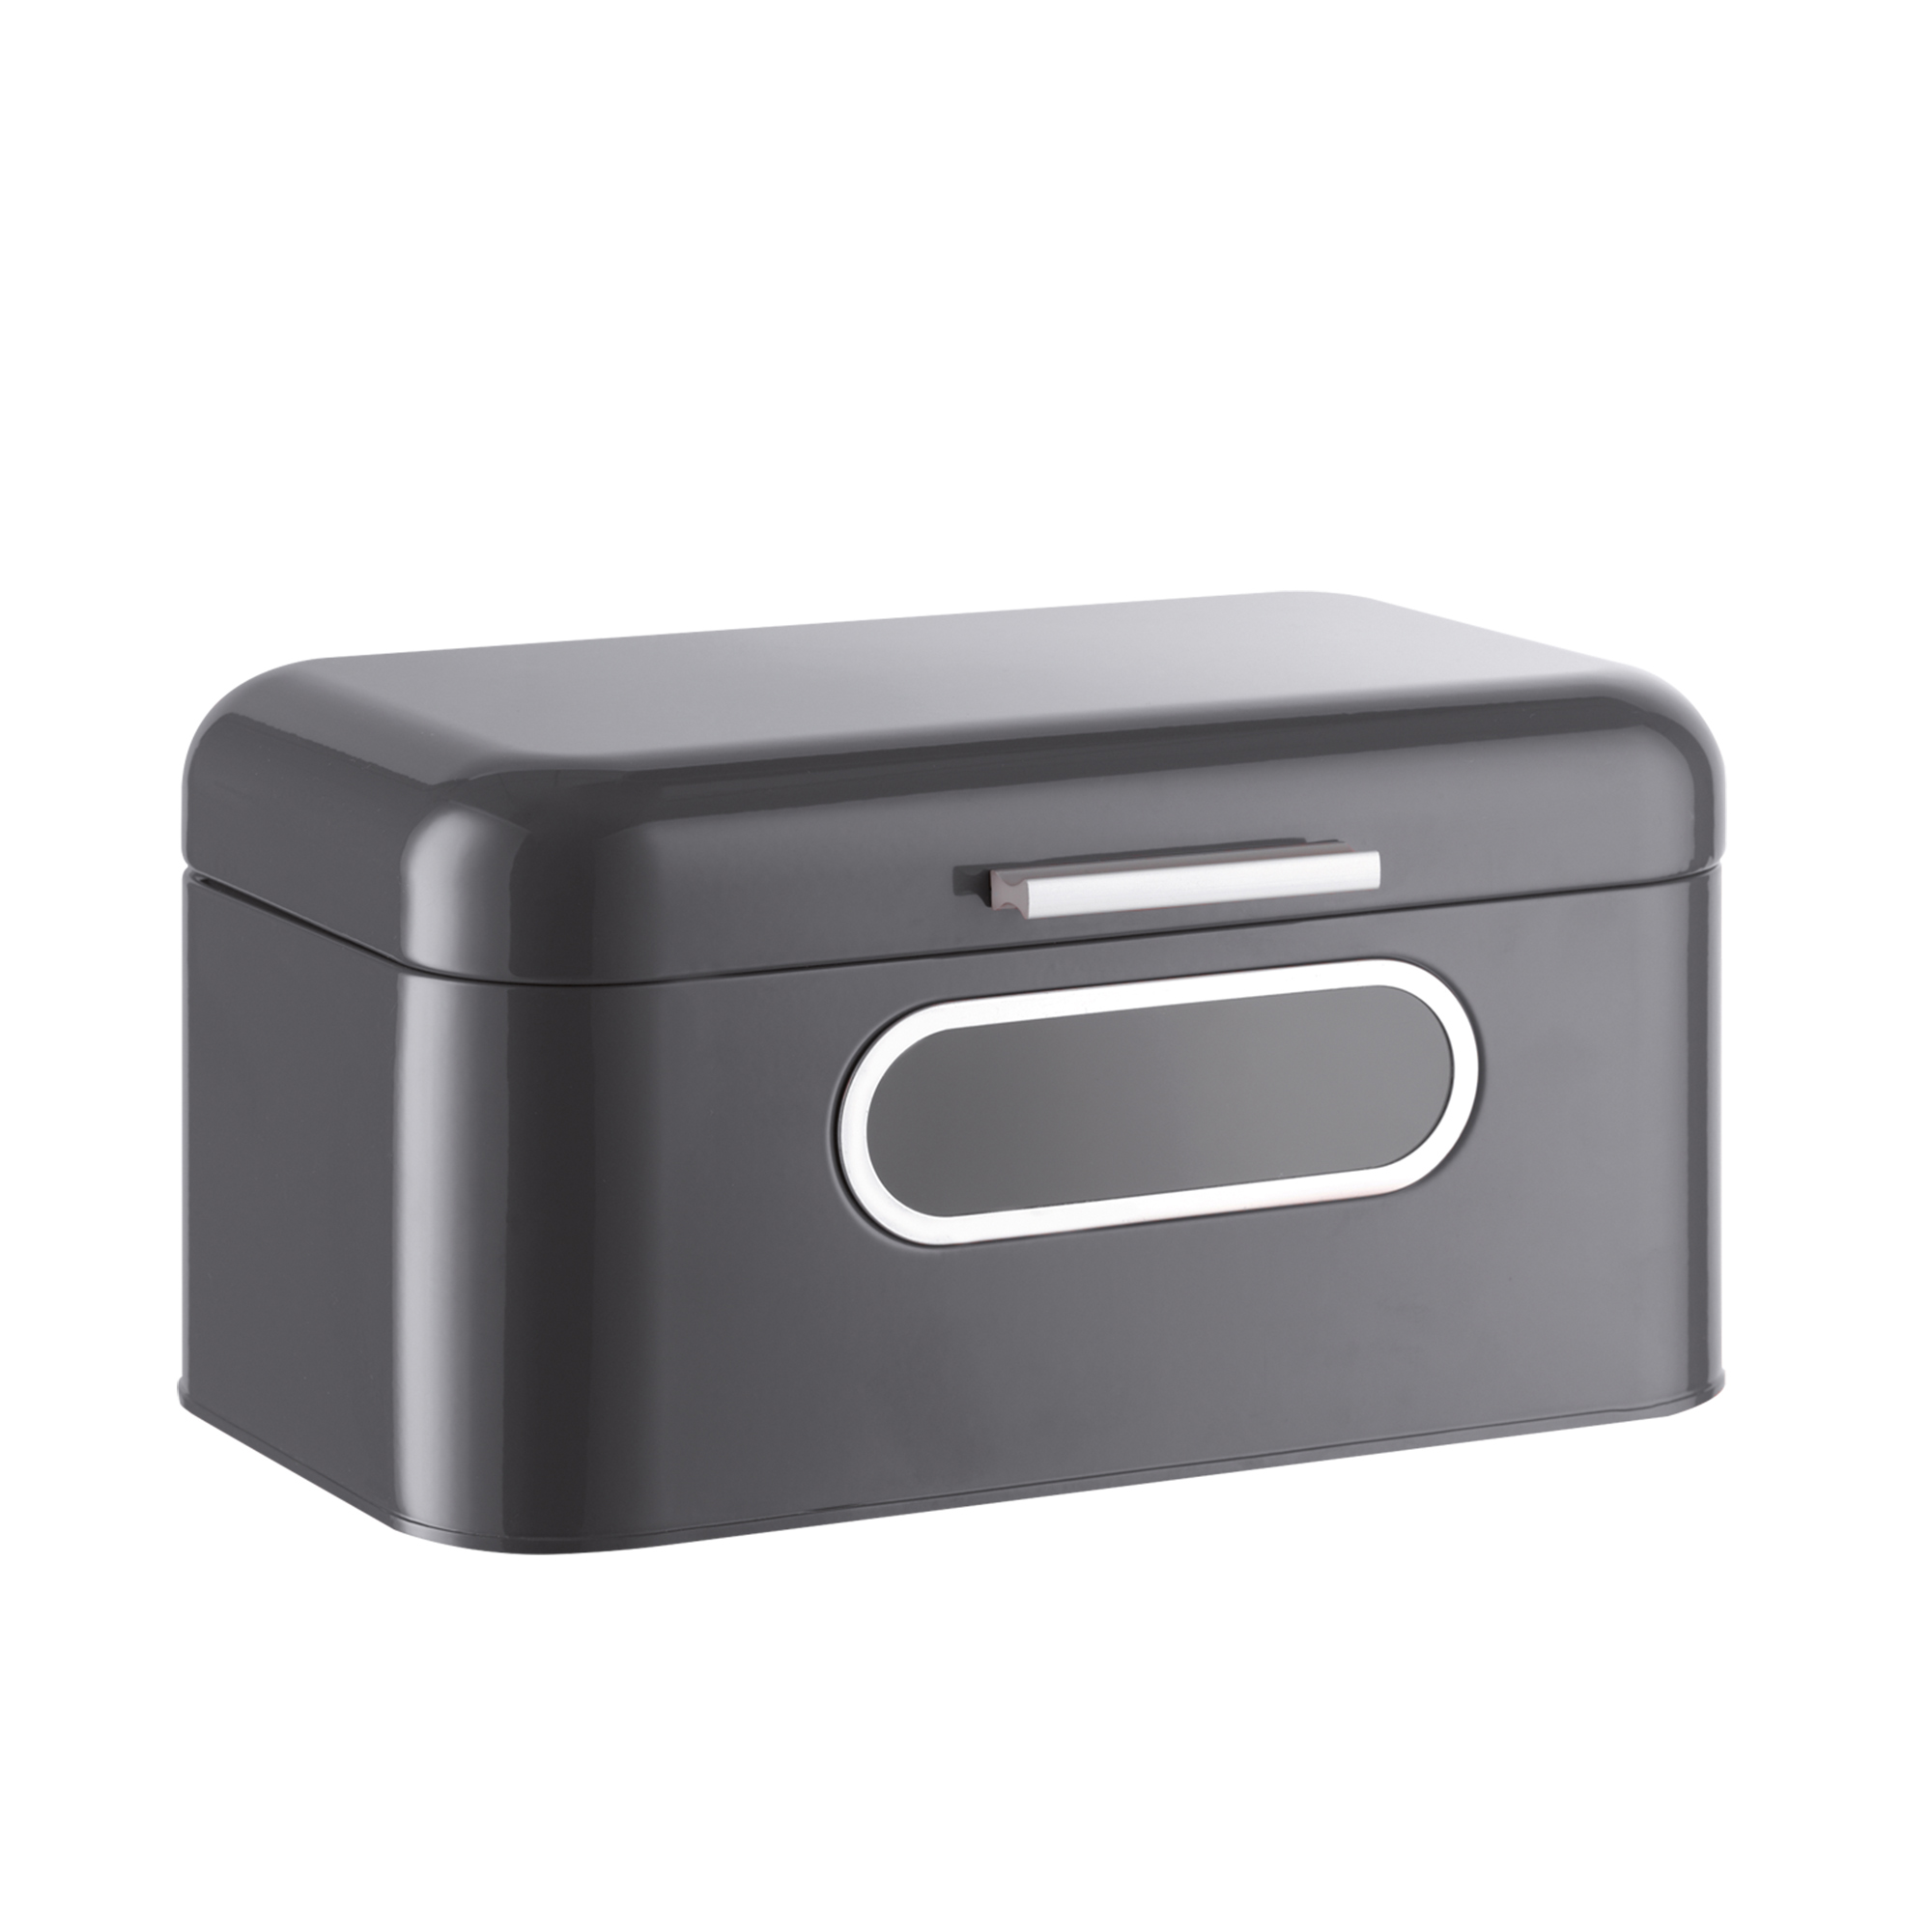 Bread Box for Kitchen Countertop - Black Bread Bin Storage Container with Lid for